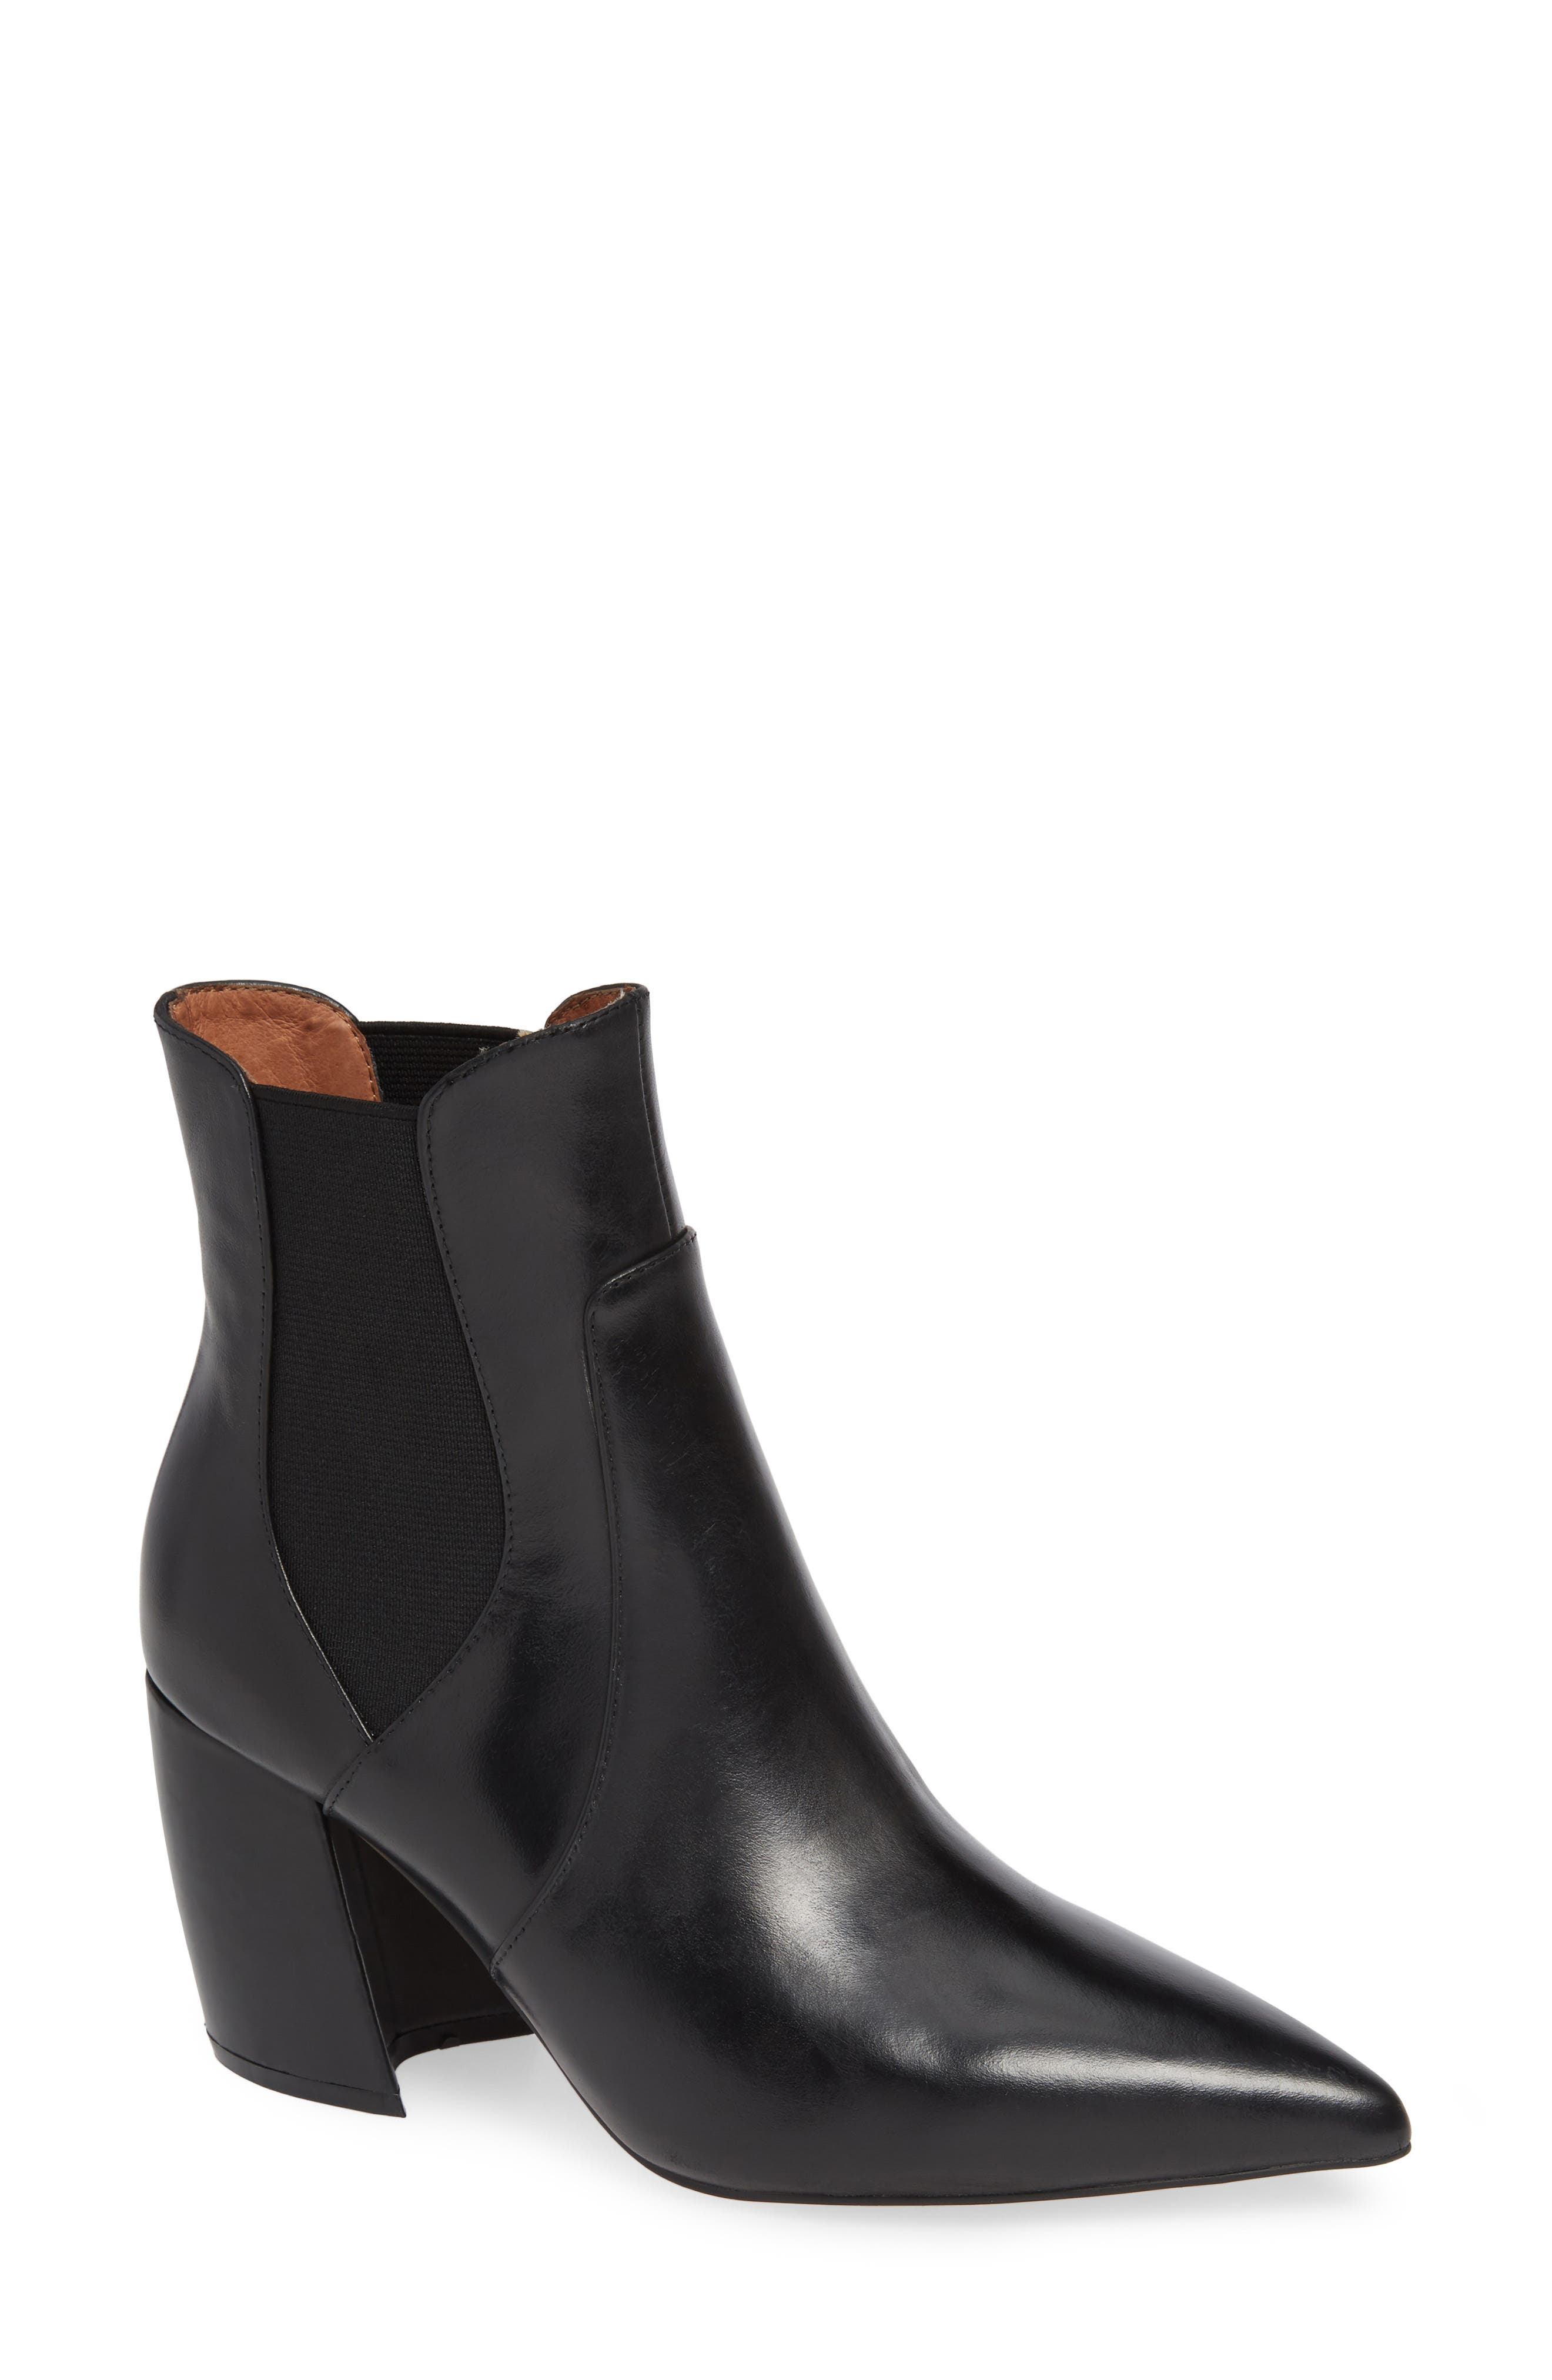 Akilina Bootie,                         Main,                         color, BLACK LEATHER